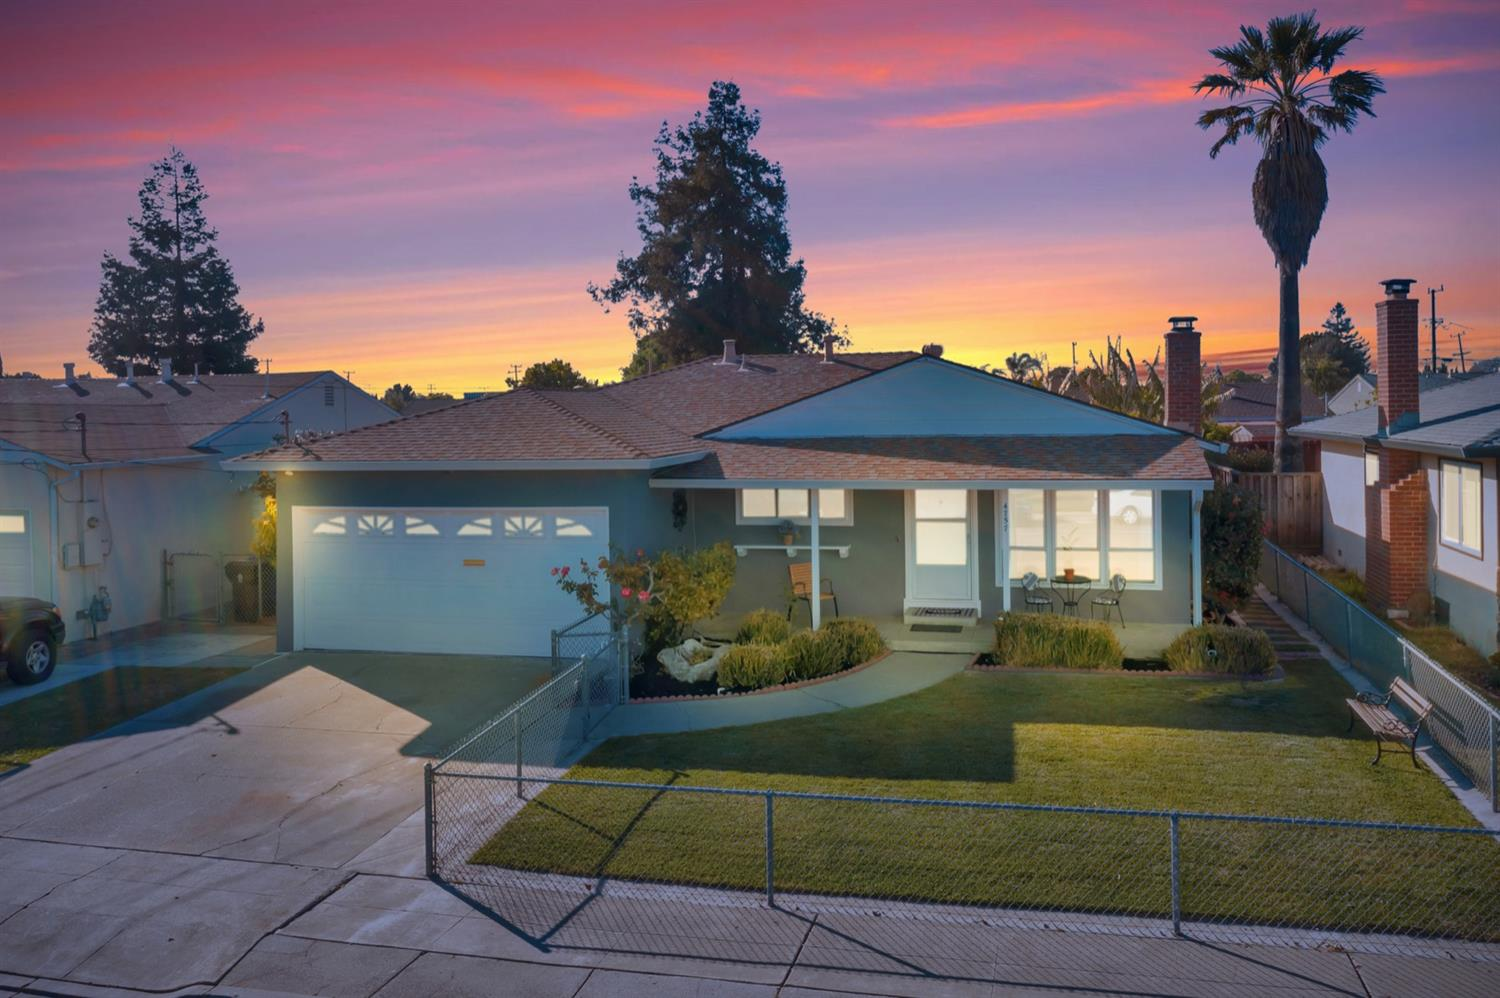 Location, Location Location!!!  Wonderful Single-Story 3 Bedrooms / 2 Bathrooms, 1,154 SqFt Home Is Located On Large 6,590 SqFt Lot In The Highly Sought After Cabrillo Area in Fremont. Excellent Layout With Lots Of Natural Light. It Has a Flowing Floor Plan & Many Upgrades Including Newly Remodeled Baths, New Interior Paint, Updated Kitchen with Granite Counter Tops, Gas Stove, SS Appliances & Recessed Lights,This Property Also Features Central HVAC, Hard Wood Flooring. Bonus Room Addition with a Bathroom & Independent Entrance, Could be used as Office or ExtraBedroom. Nice Front Yard & Spacious Backyard, Perfect For Relaxing, Family Gathering and Entertaining, Multiple Mature Fruit Trees. Excellent Location Near Major Commute Routes, 880/8